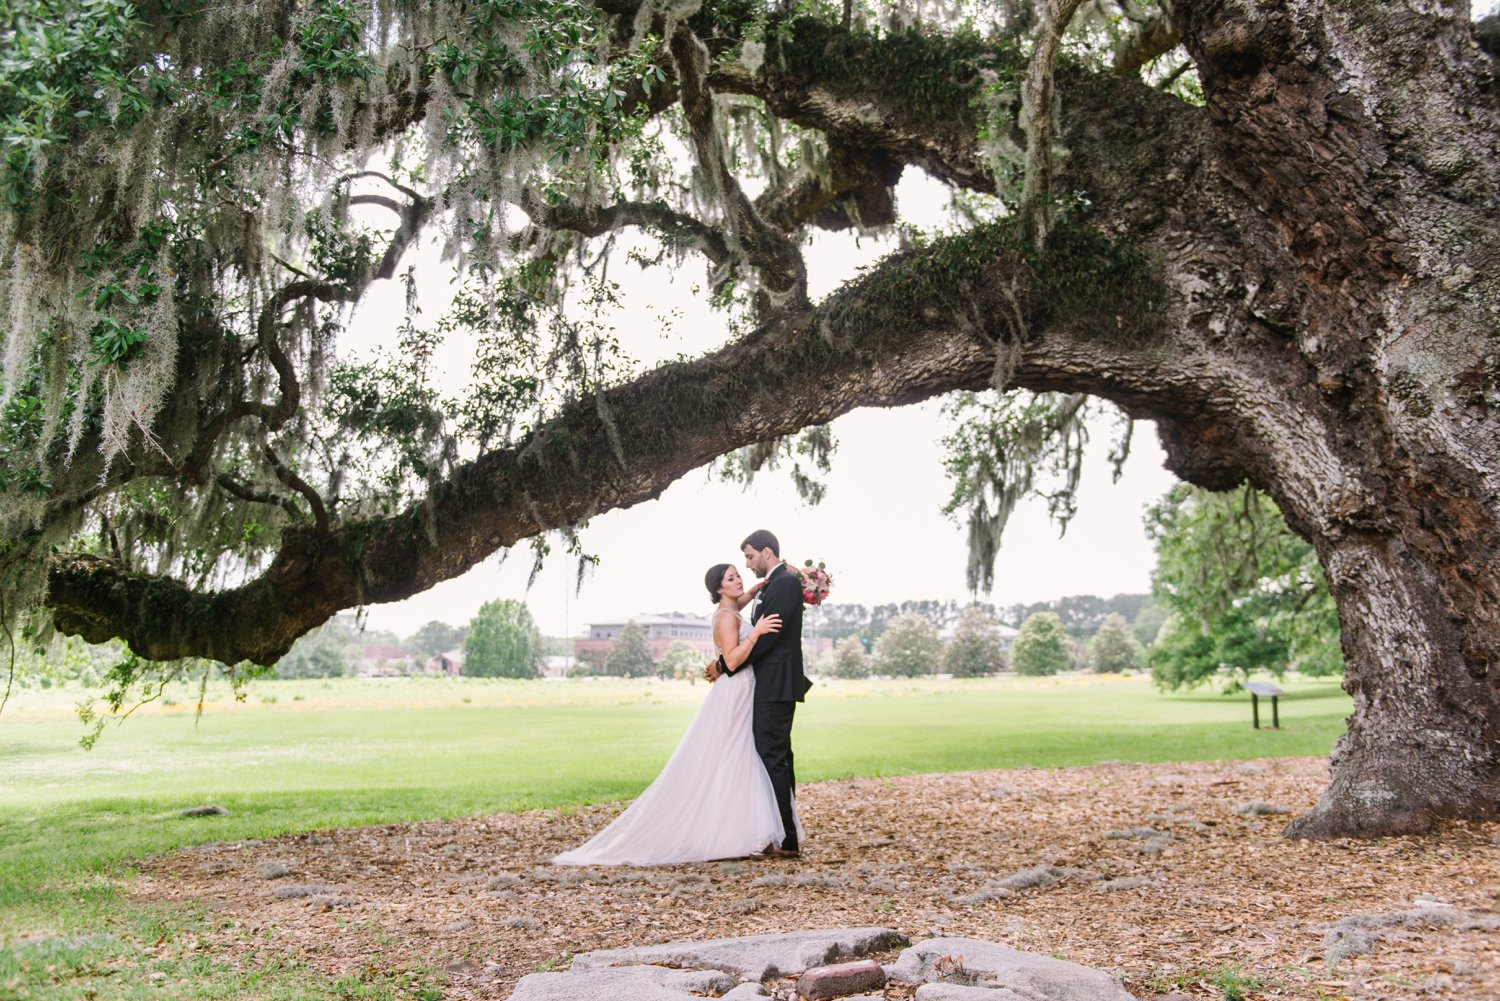 Lindsey_A_Miller_Photography_mcleod_plantation_wedding_charleston_south_carolina_clear_tent_spring_mod_events_028.jpg